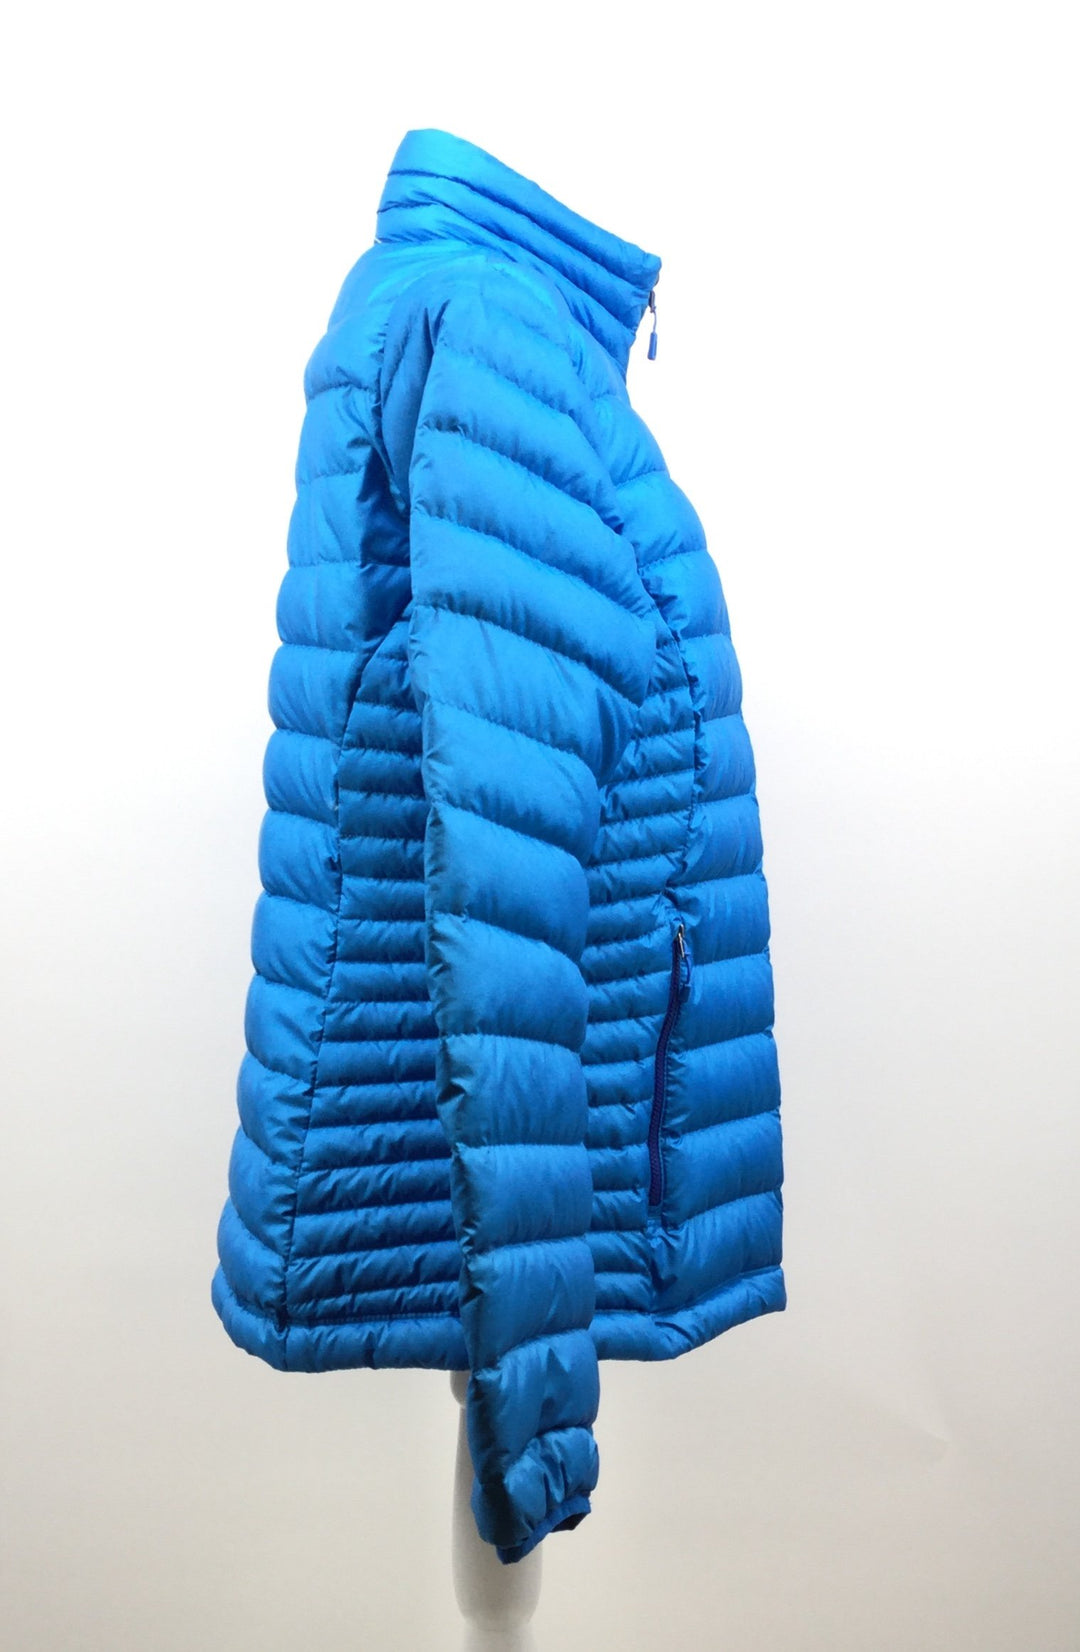 Patagonia Coat Short Size:l - <P>BLUE PATAGONIA SHORT BLUE COAT WITH DARK BLUE INTERIOR. SIZE LARGE. INTERIOR POCKET AND DARK BLUE DETAILING.</P>